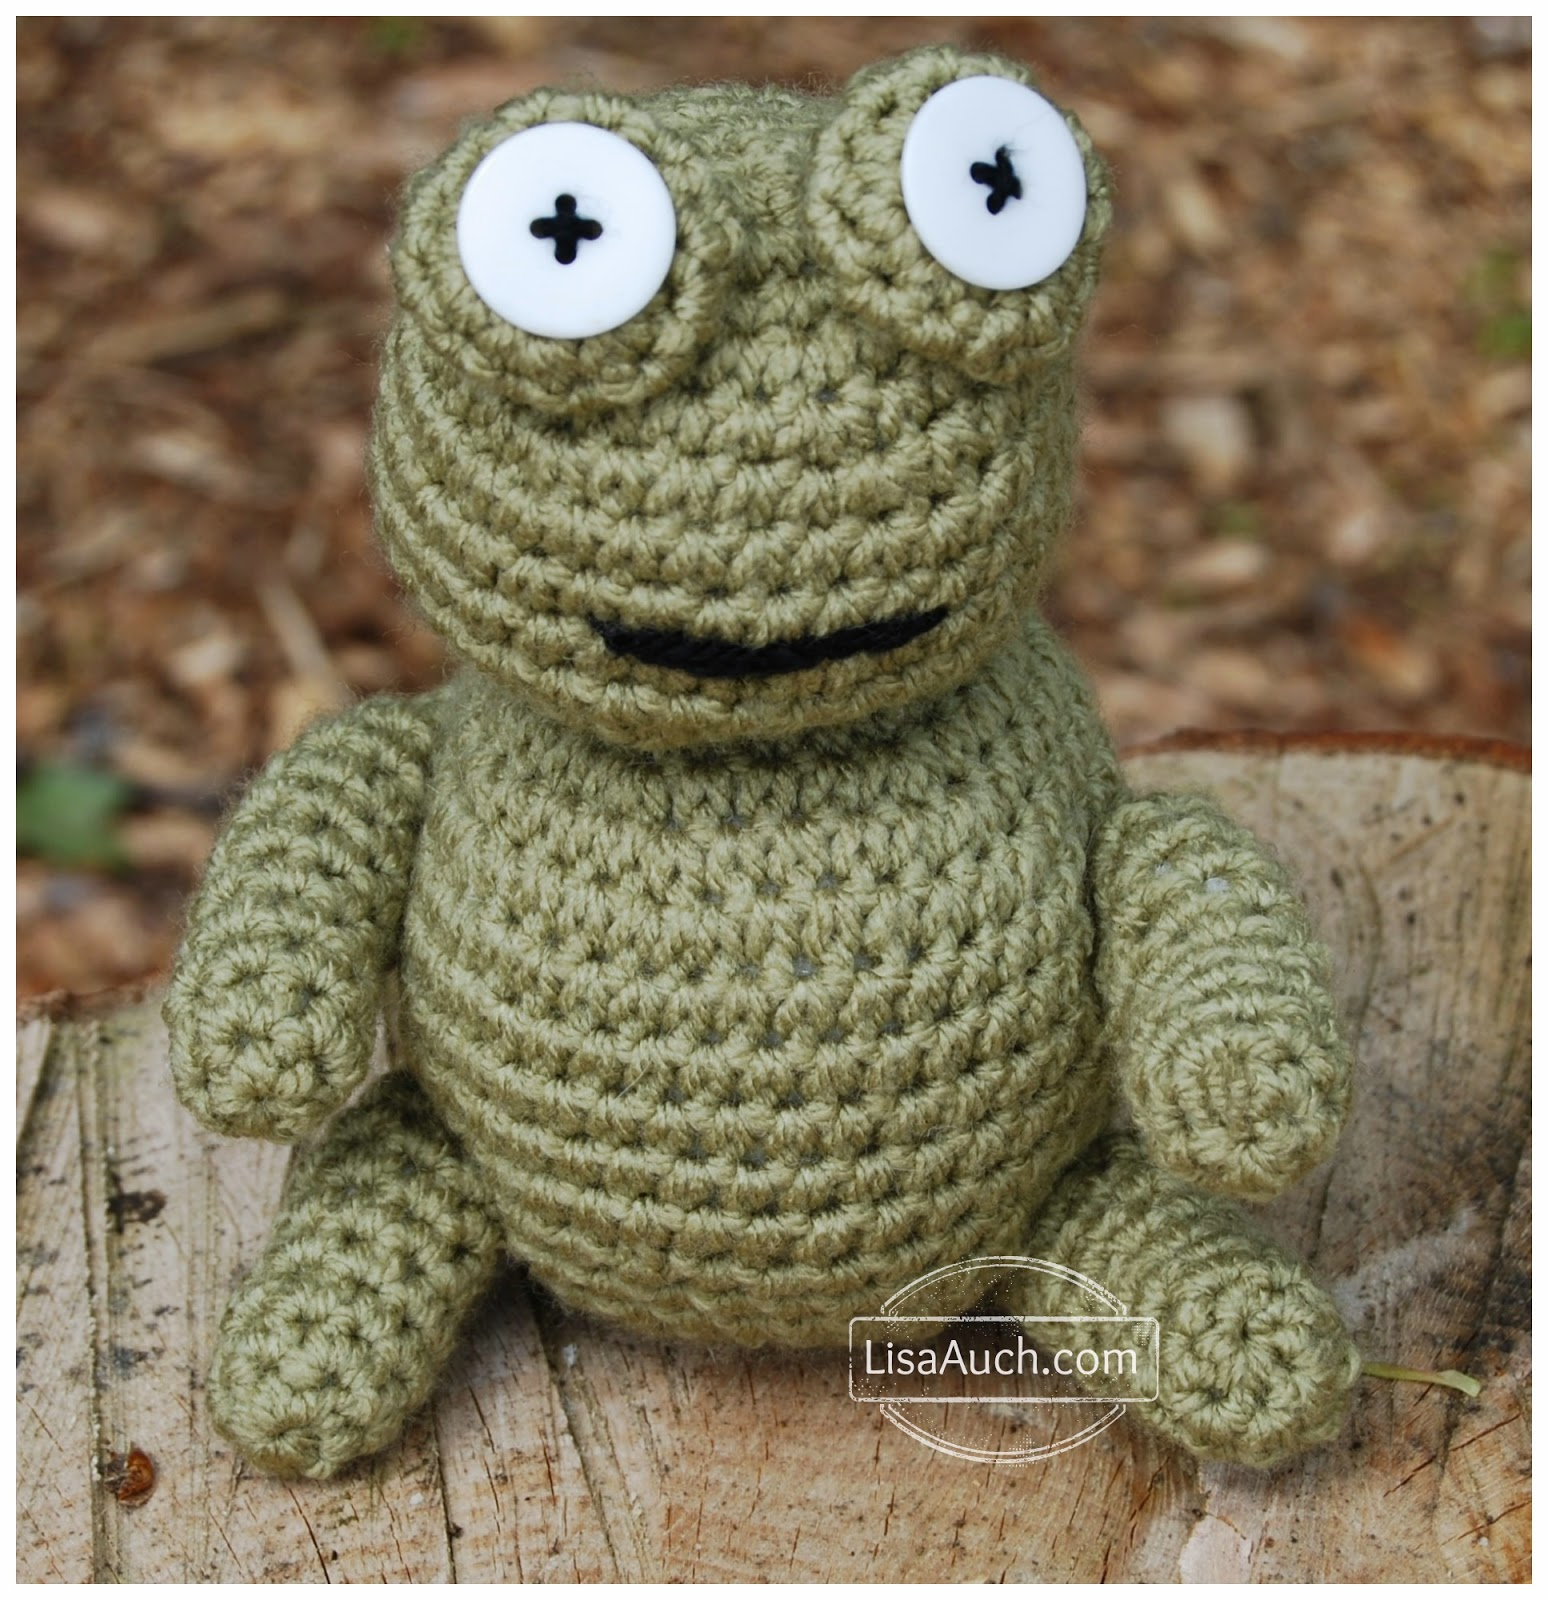 Free Crochet Patterns And Designs By LisaAuch: FREE